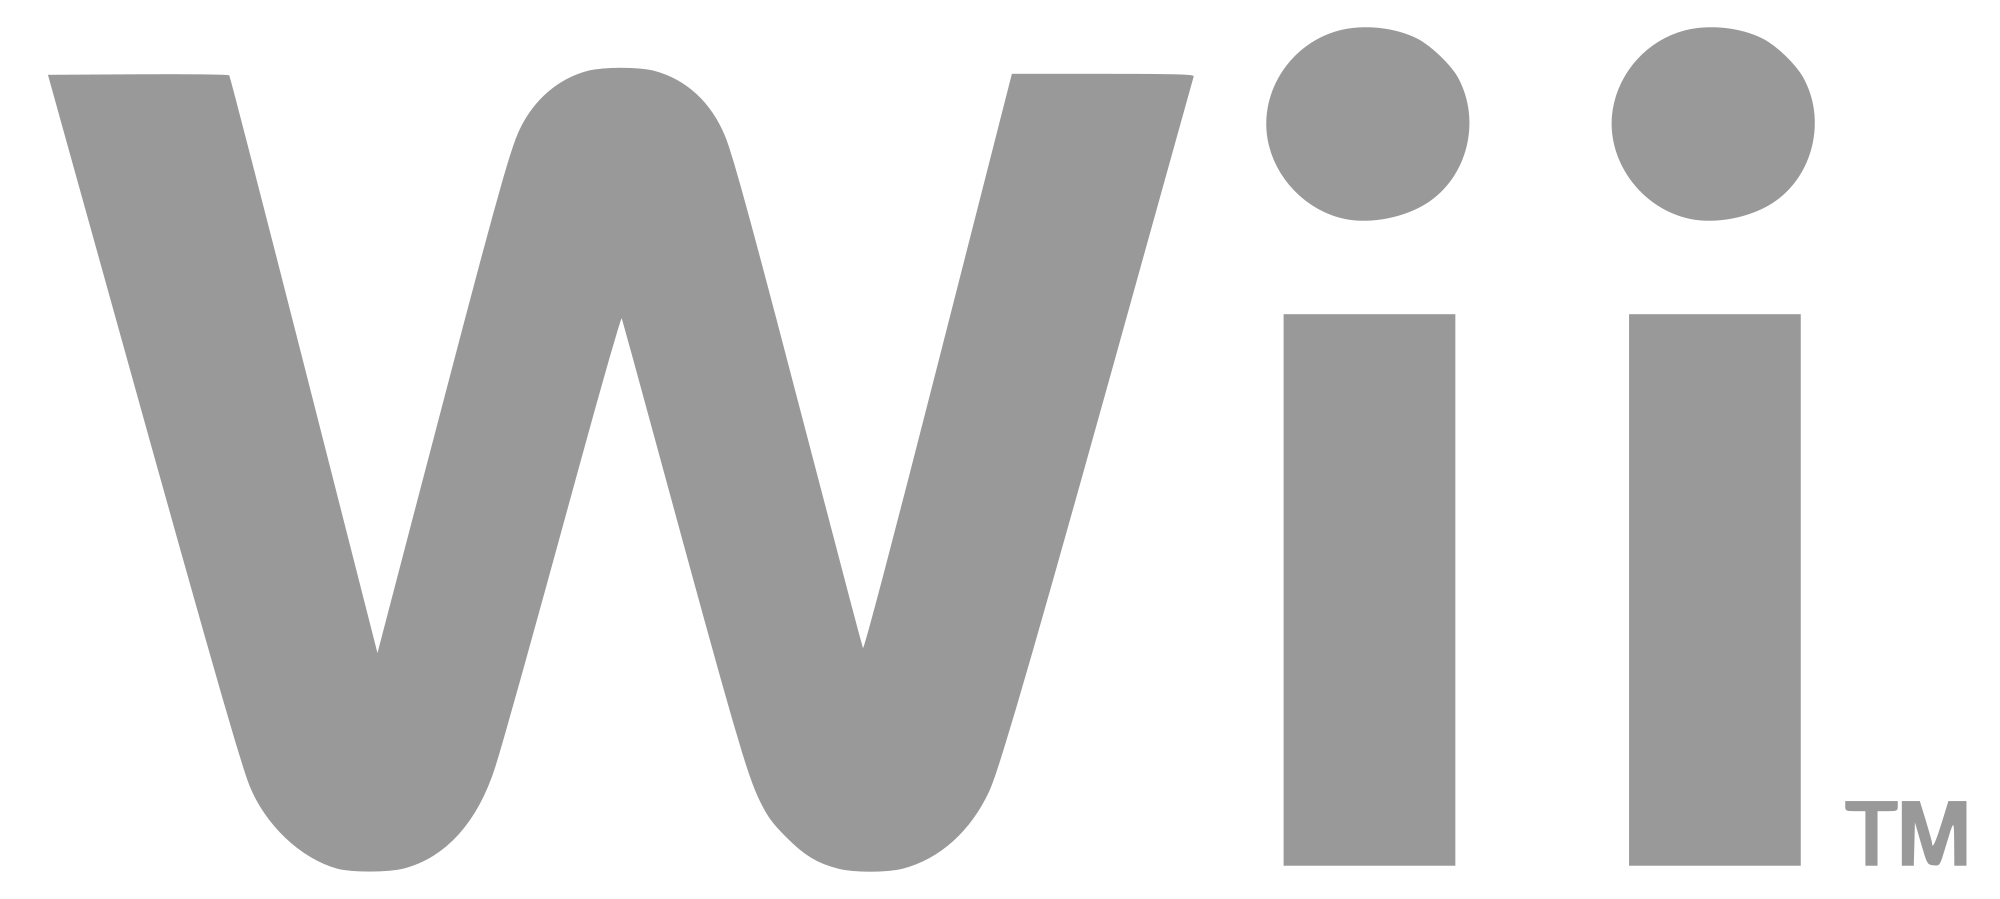 File:Wii logo.png.